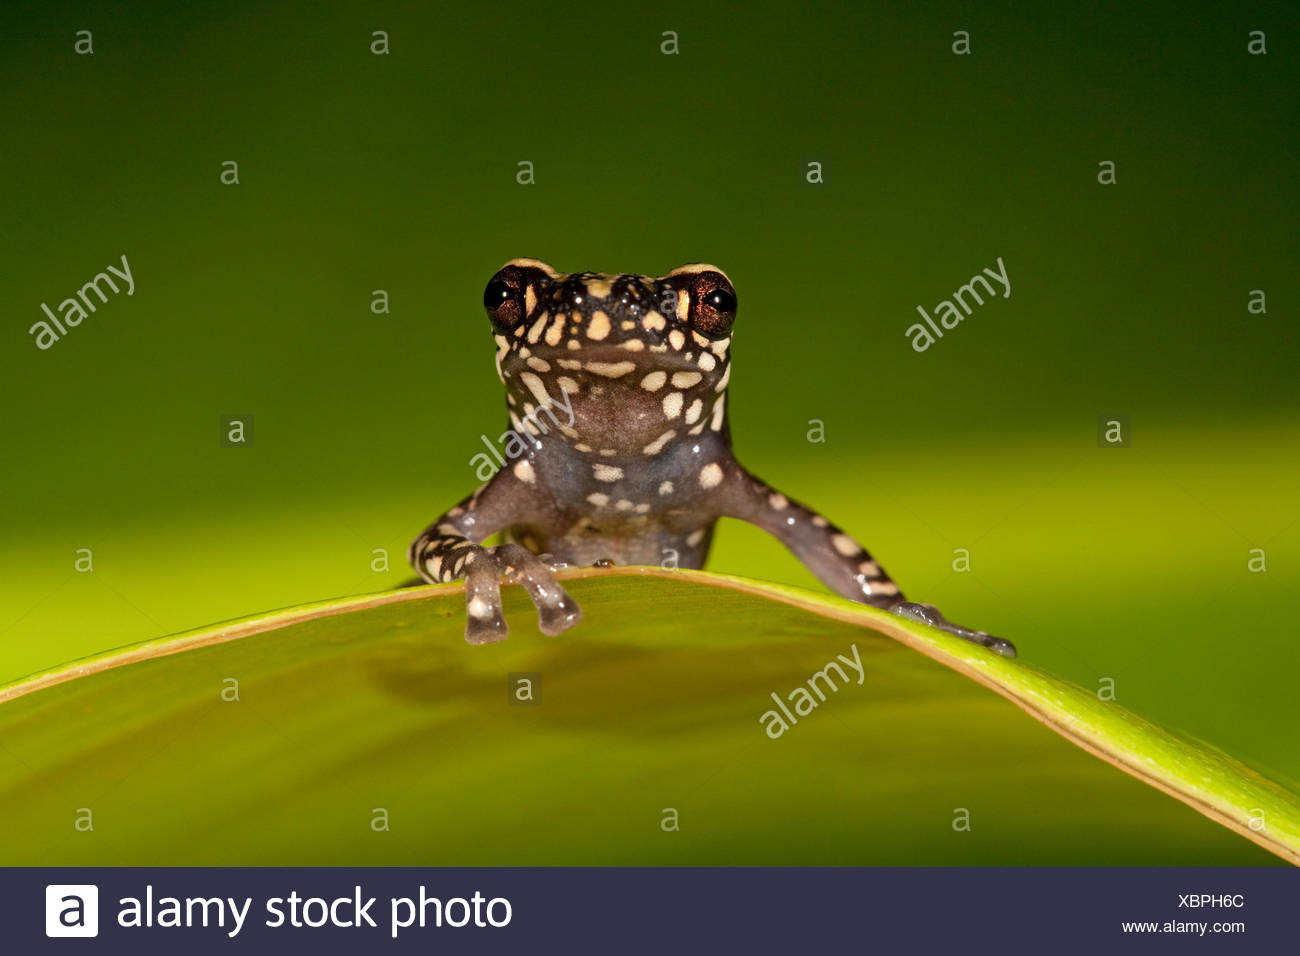 Photo d'un Tukeit frog hill reposant sur une feuille verte sur fond vert Photo Stock